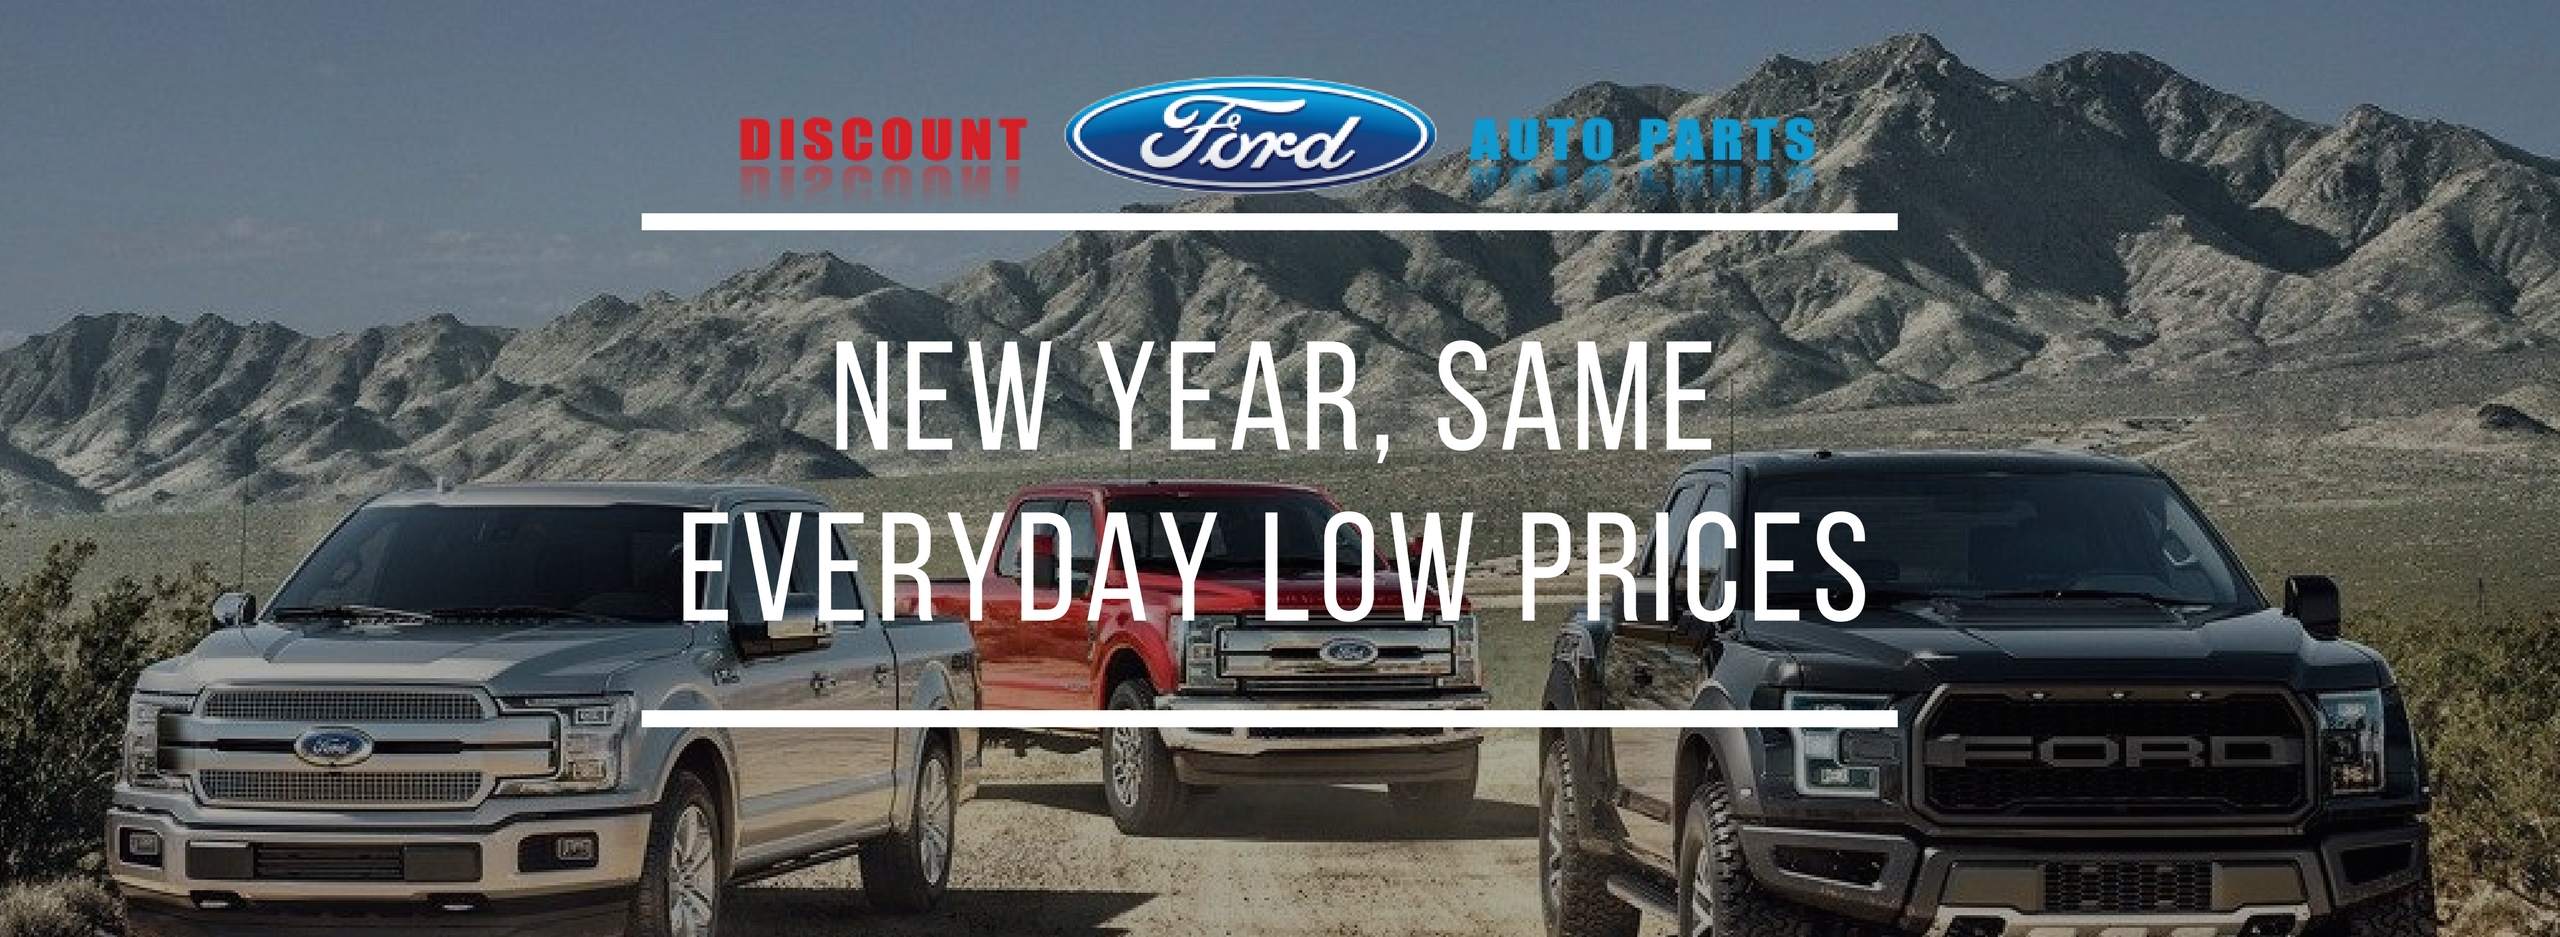 Discount Ford Amp Lincoln Parts And Accessories Online